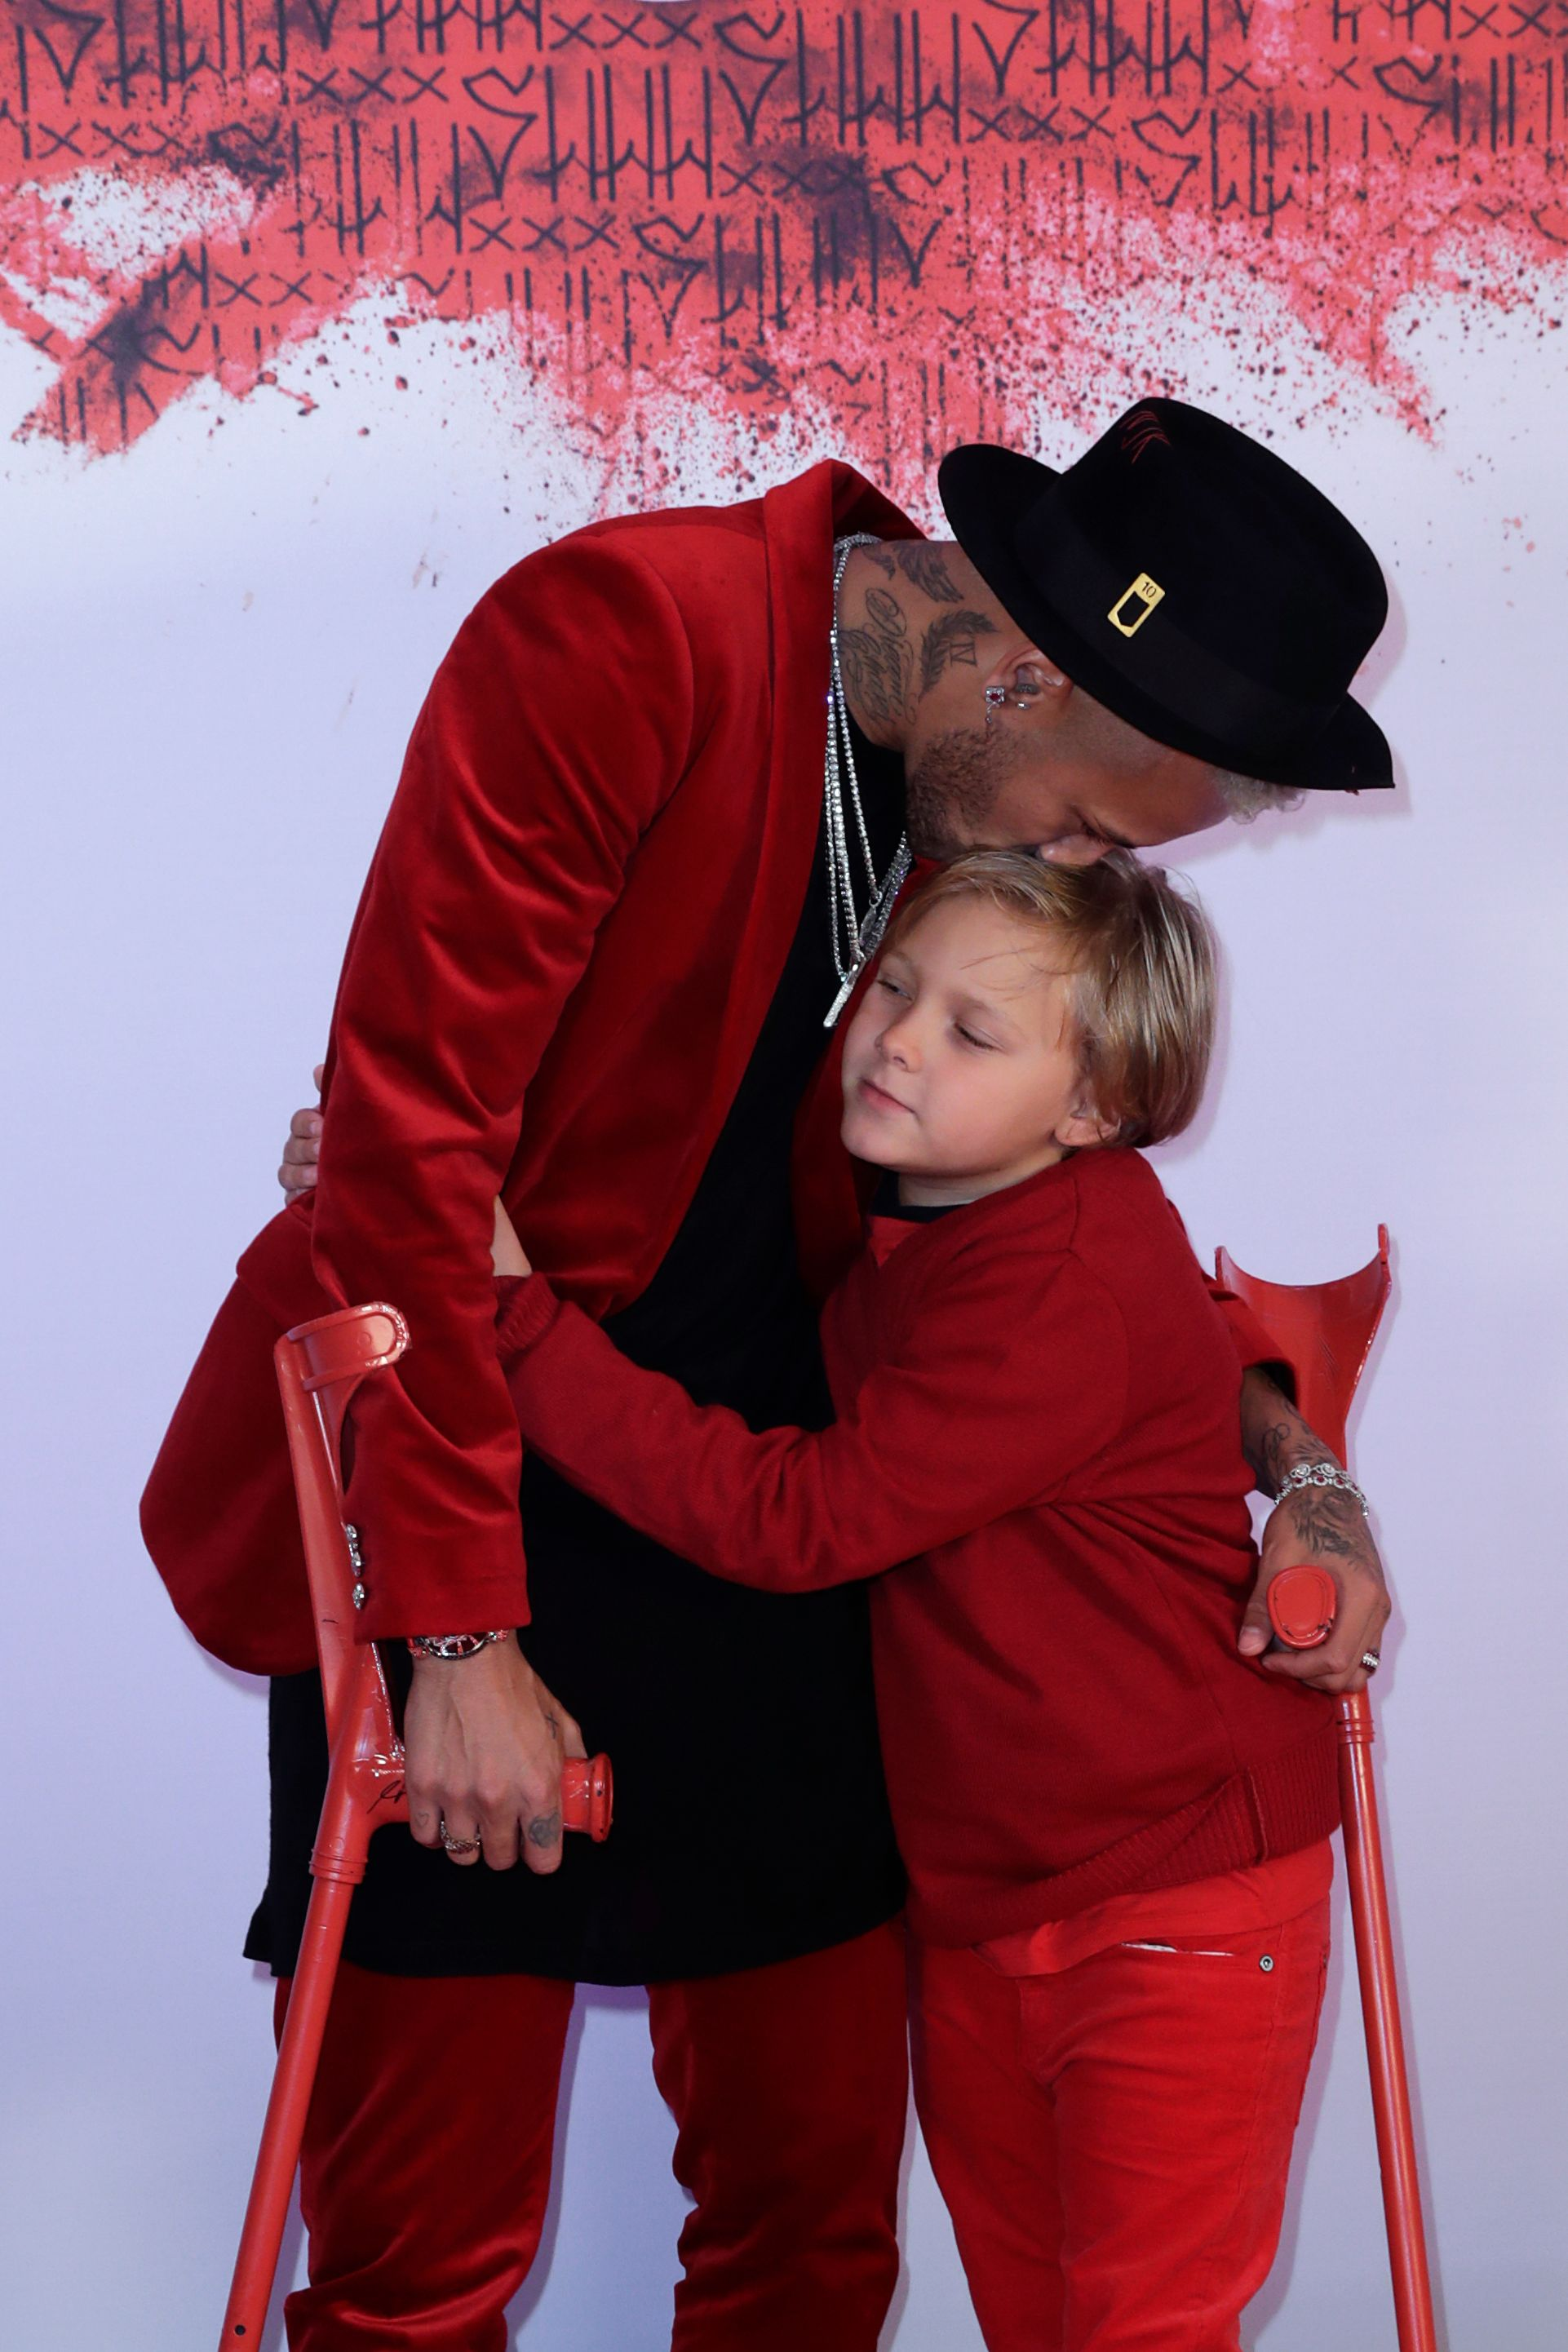 Paris Saint-Germain's Brazilian forward Neymar (L) kisses his son Davi Lucca as he arrives at his birthday party in Paris on February 4, 2019. (Photo by Thomas SAMSON / AFP)